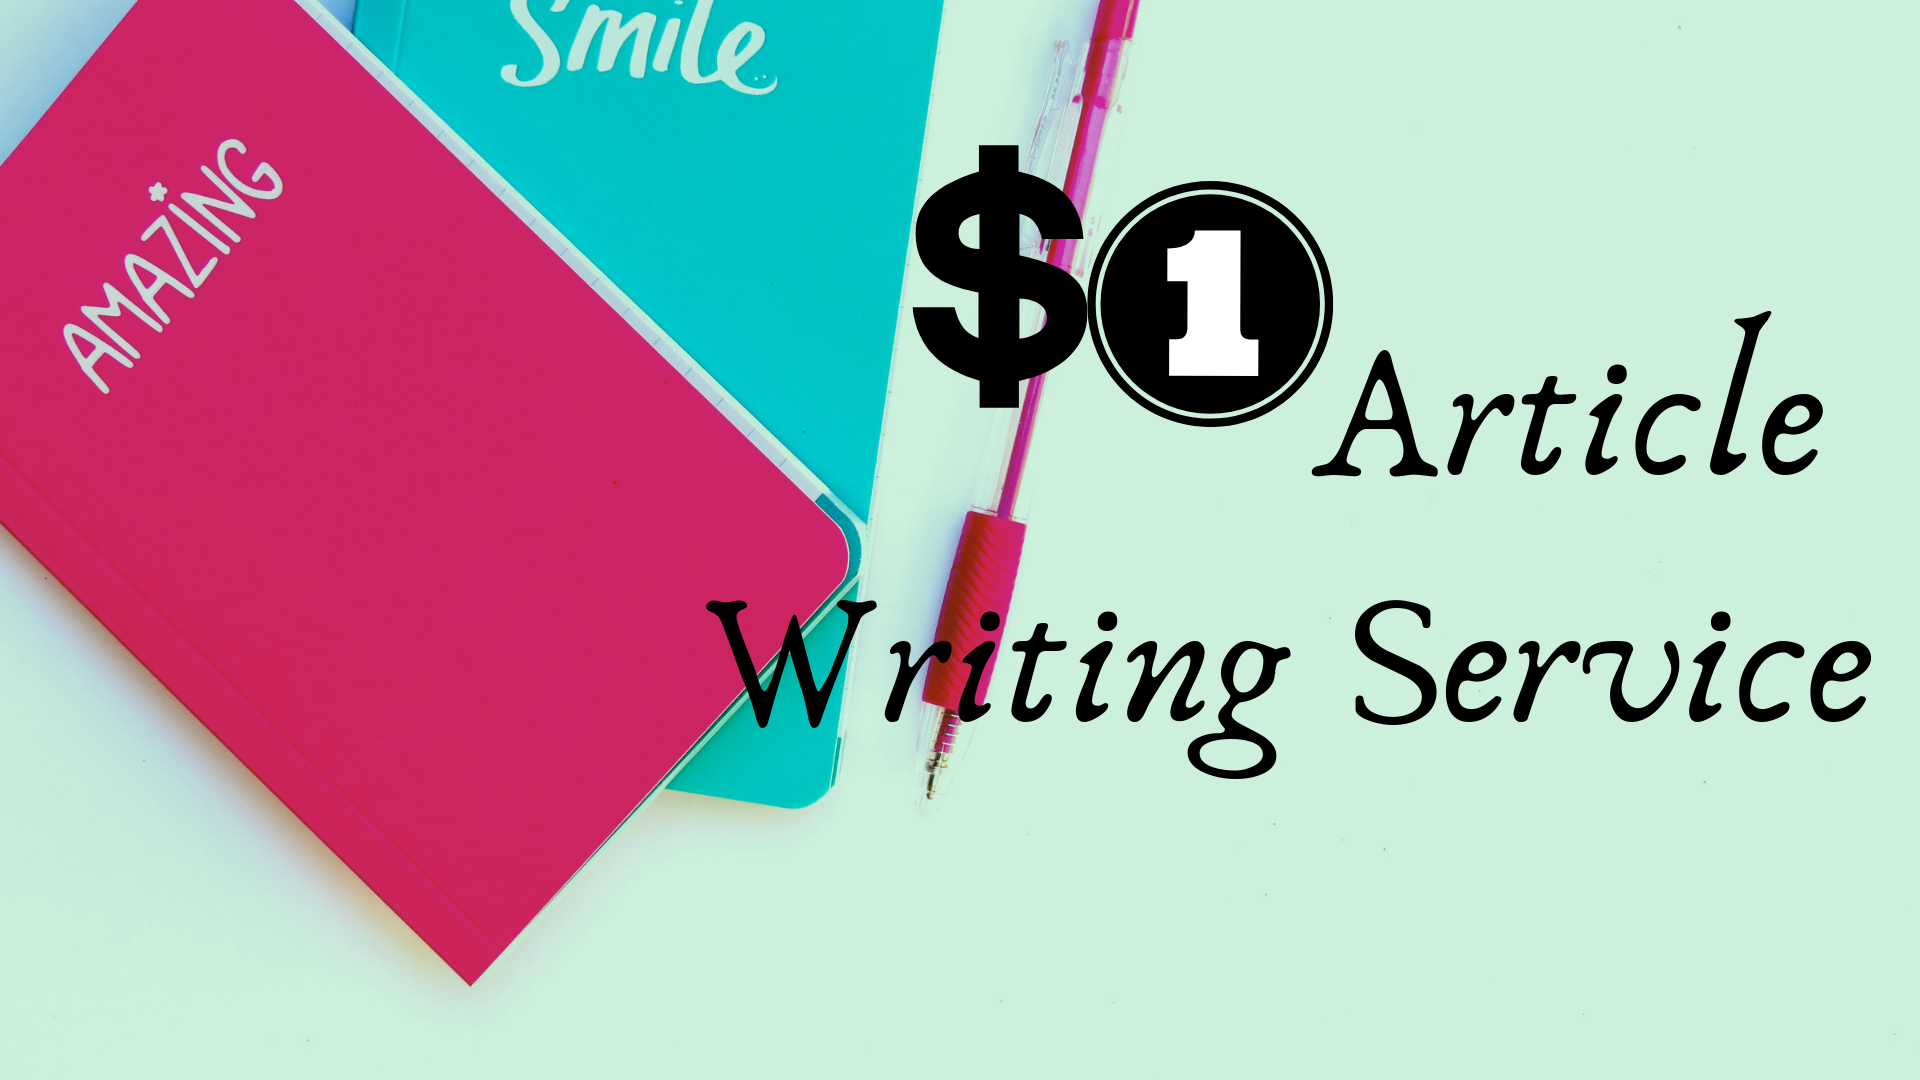 One dollar article writing service